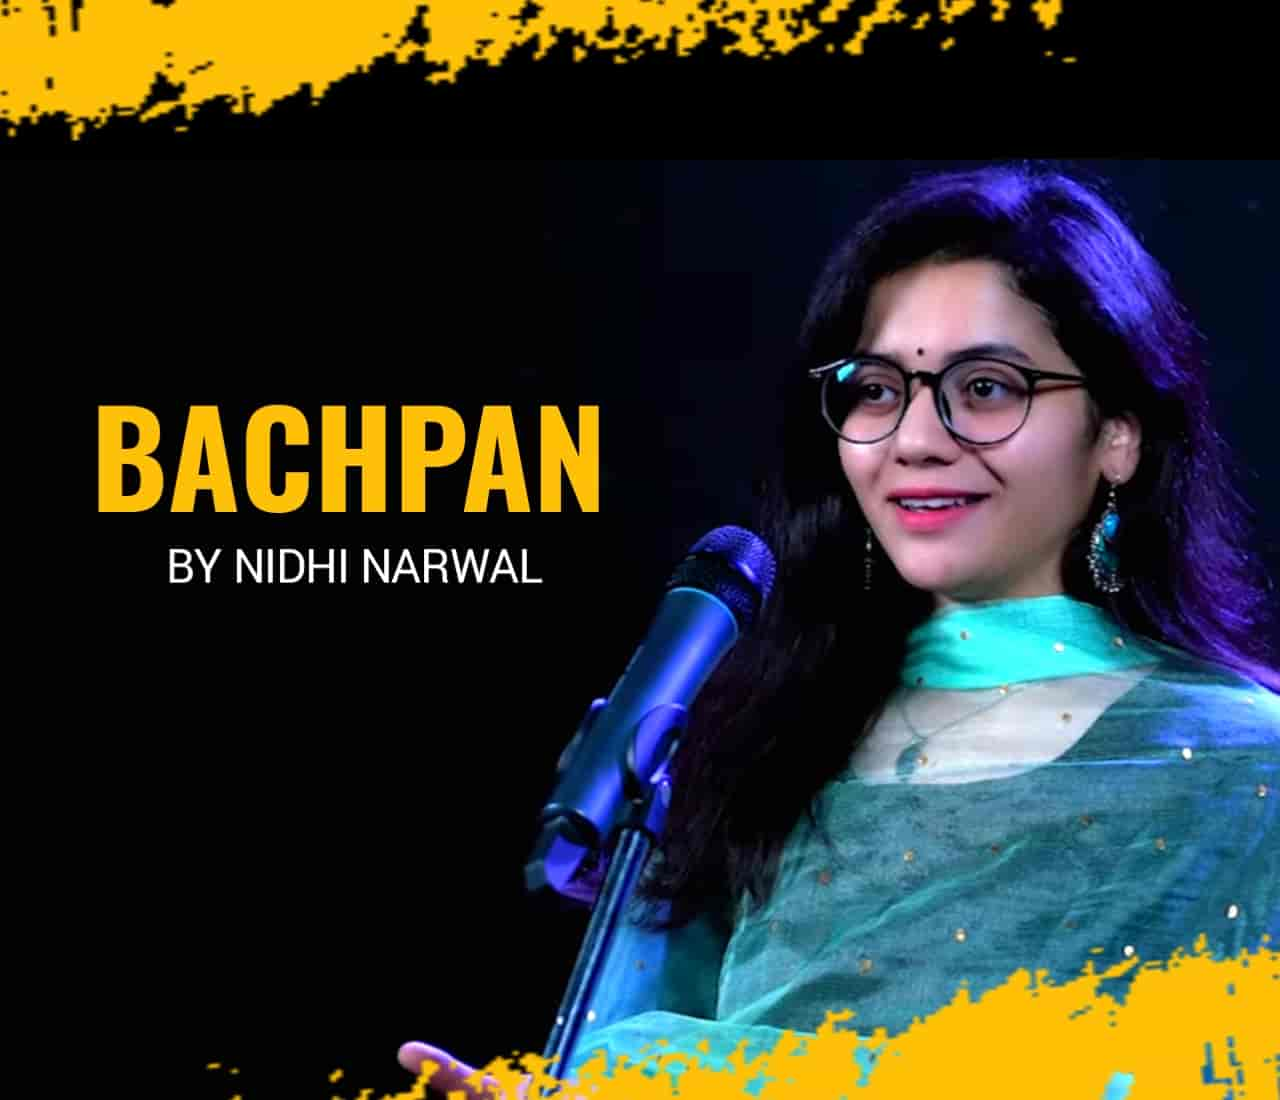 Nidhi Narwal has performed and written this beautiful poetry. This beautiful poetry 'Bachpan has released under the label of FNG Media.